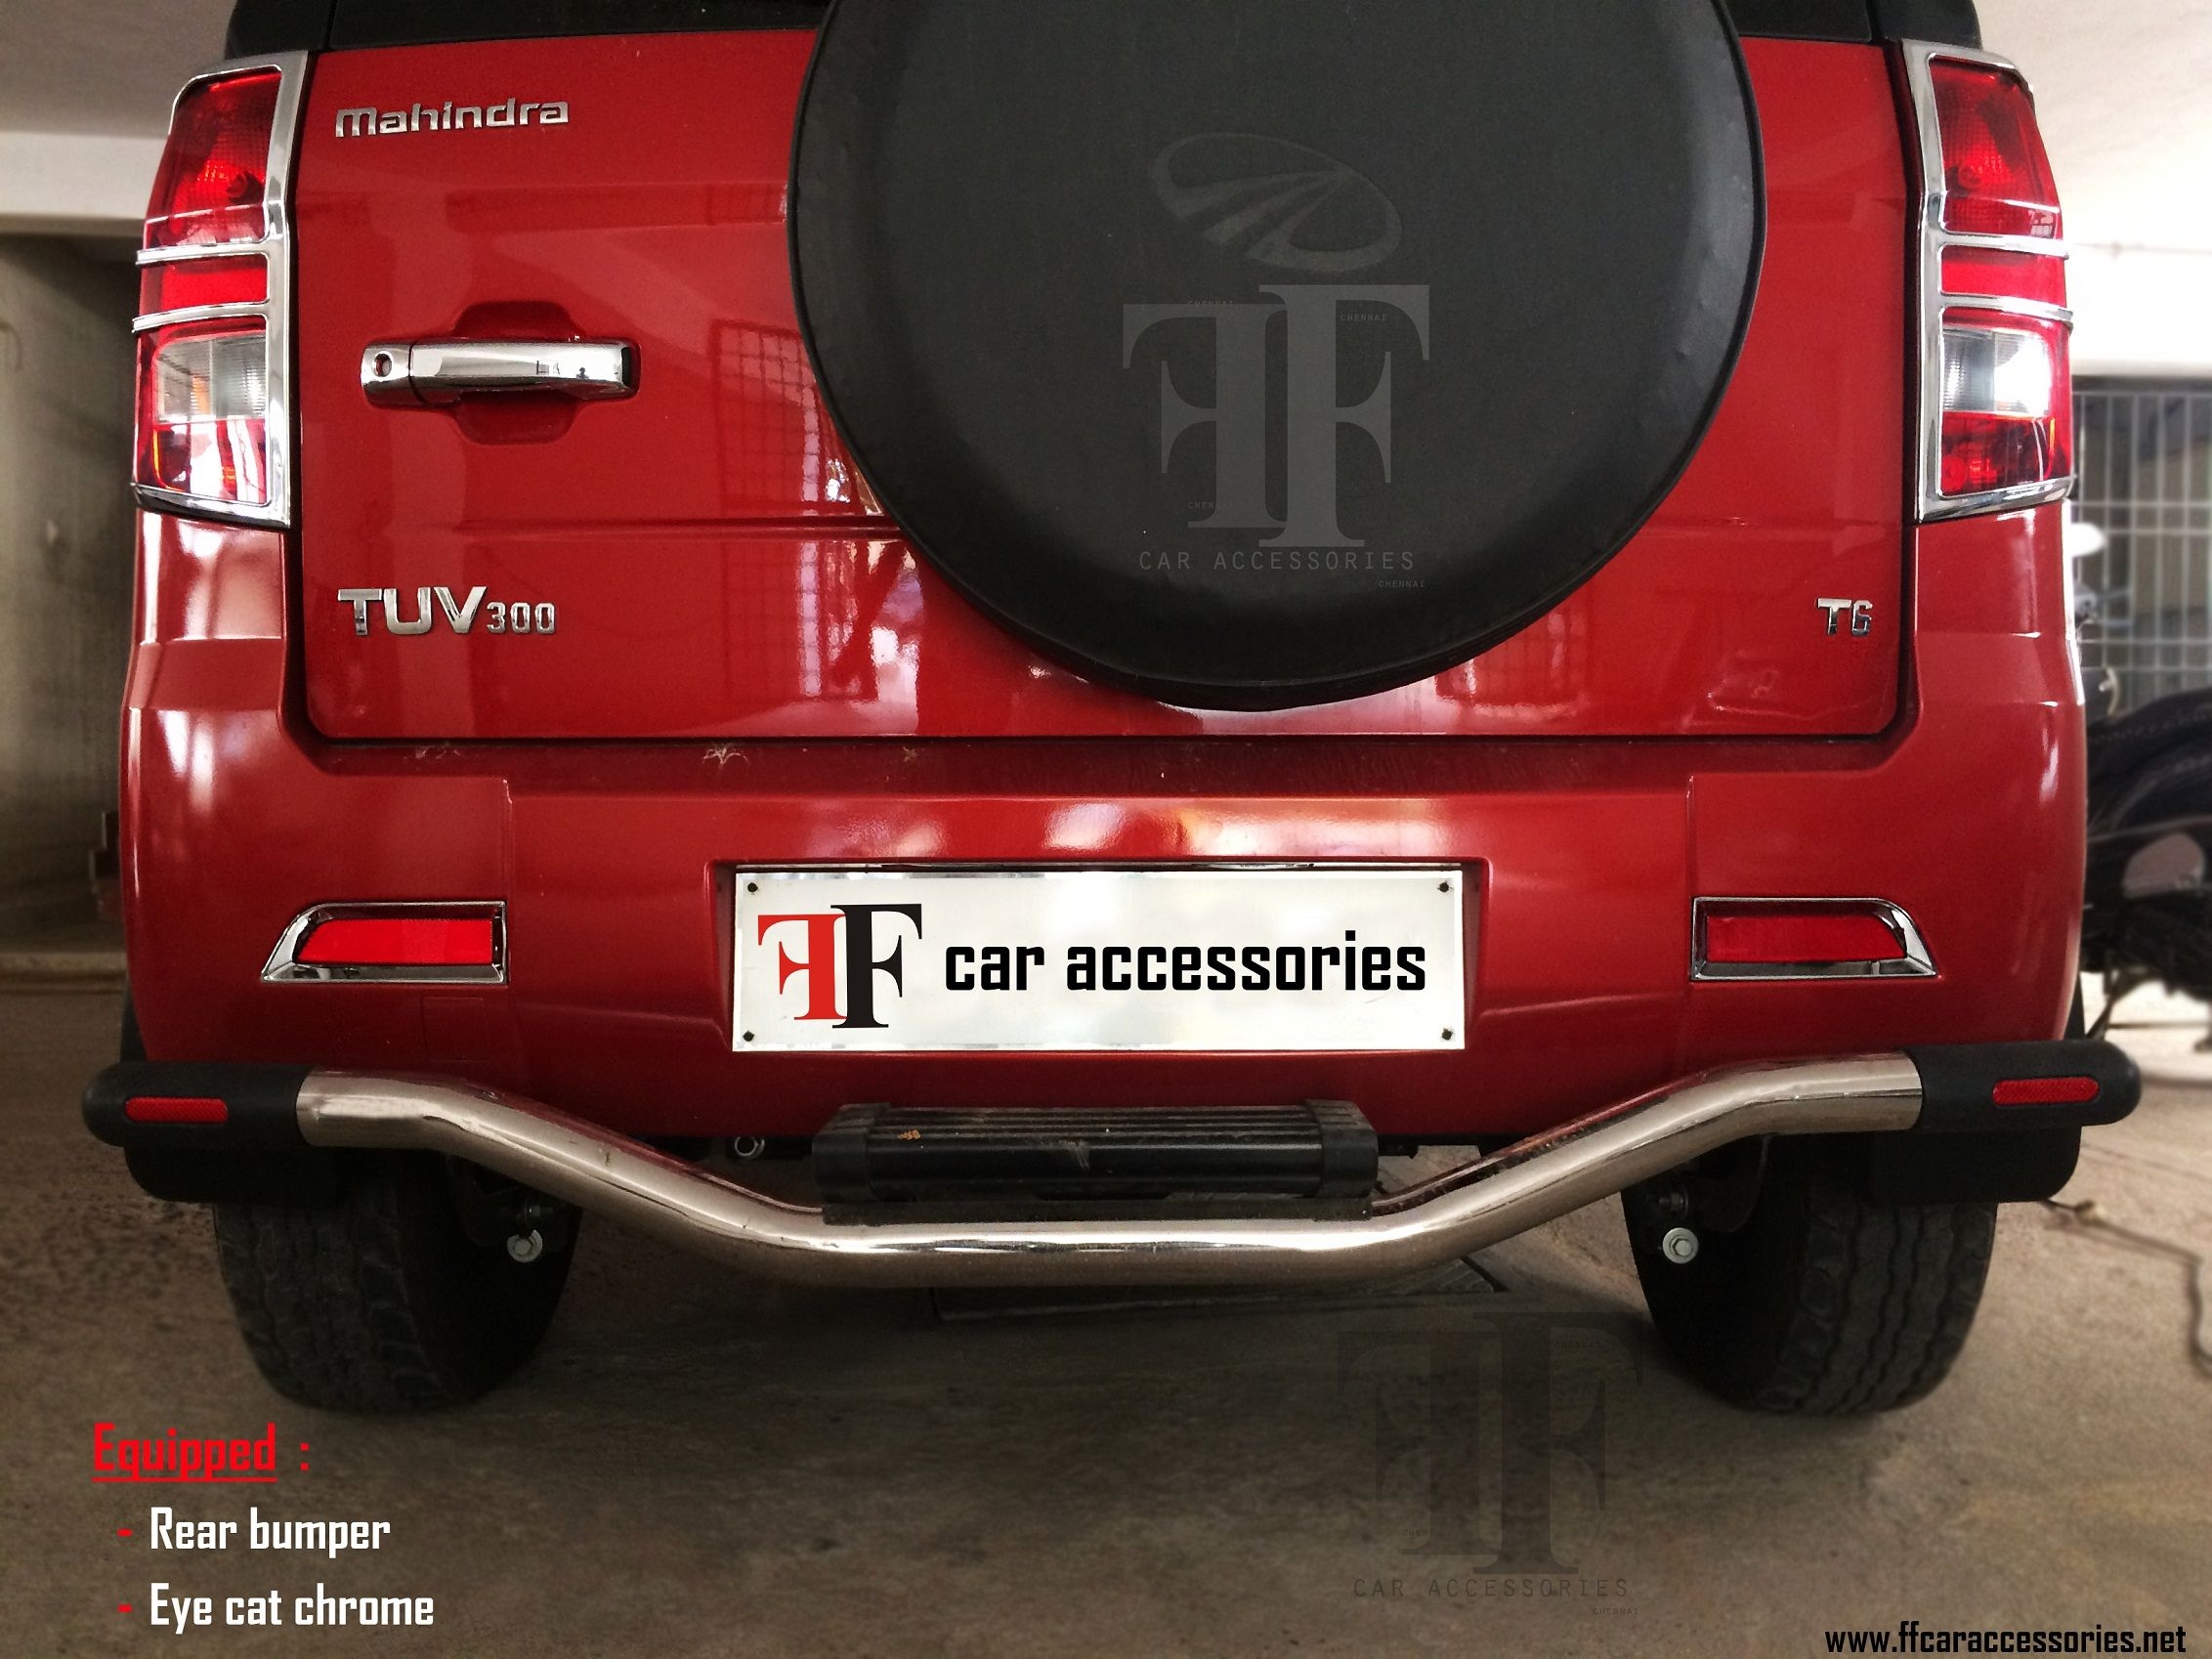 Rear guard installed on this TUV300 by our team Car